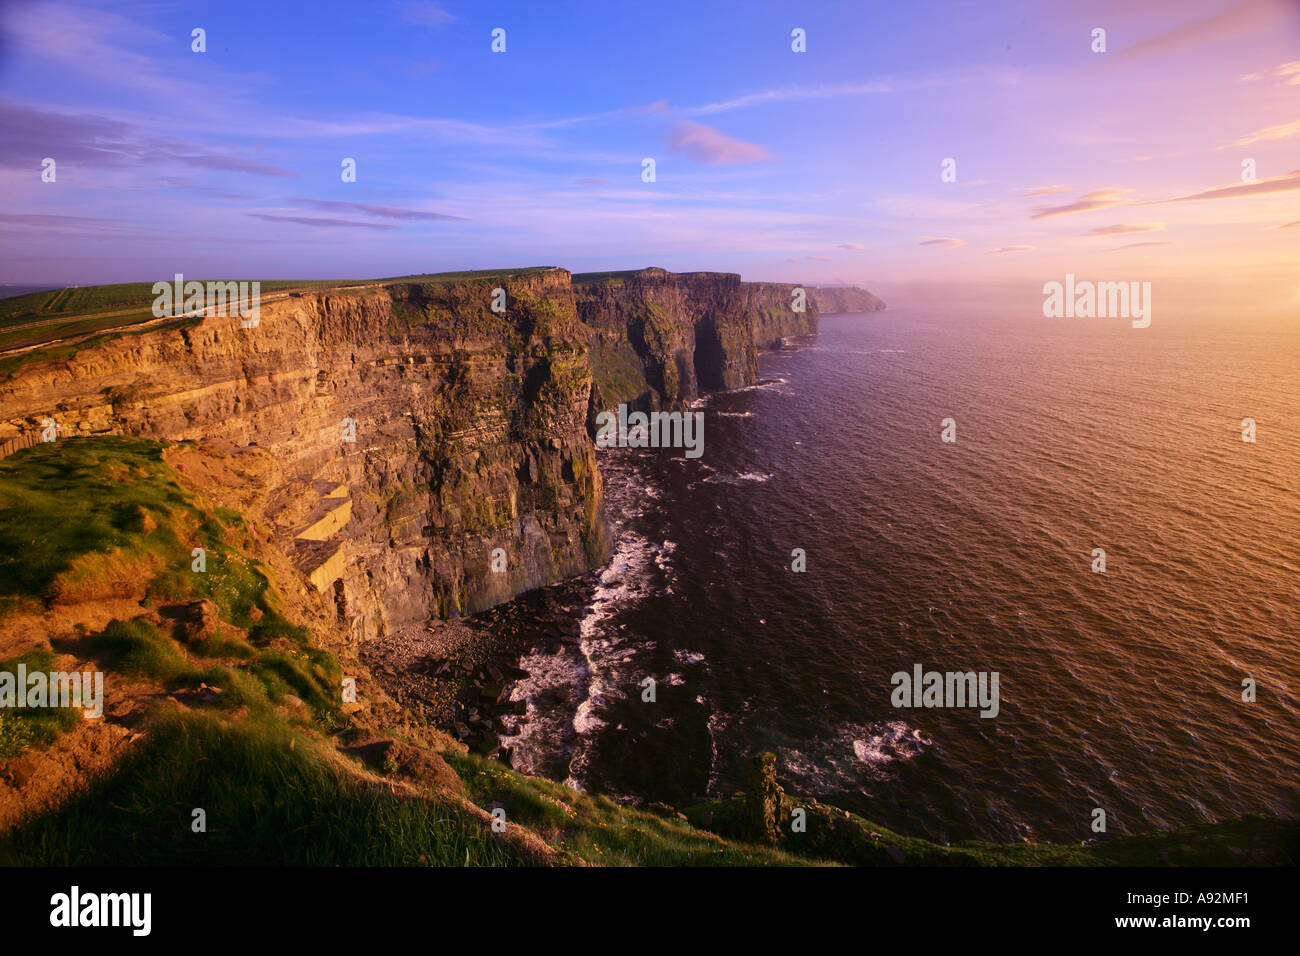 Cliffs of Moher County Clare Eire - Stock Image